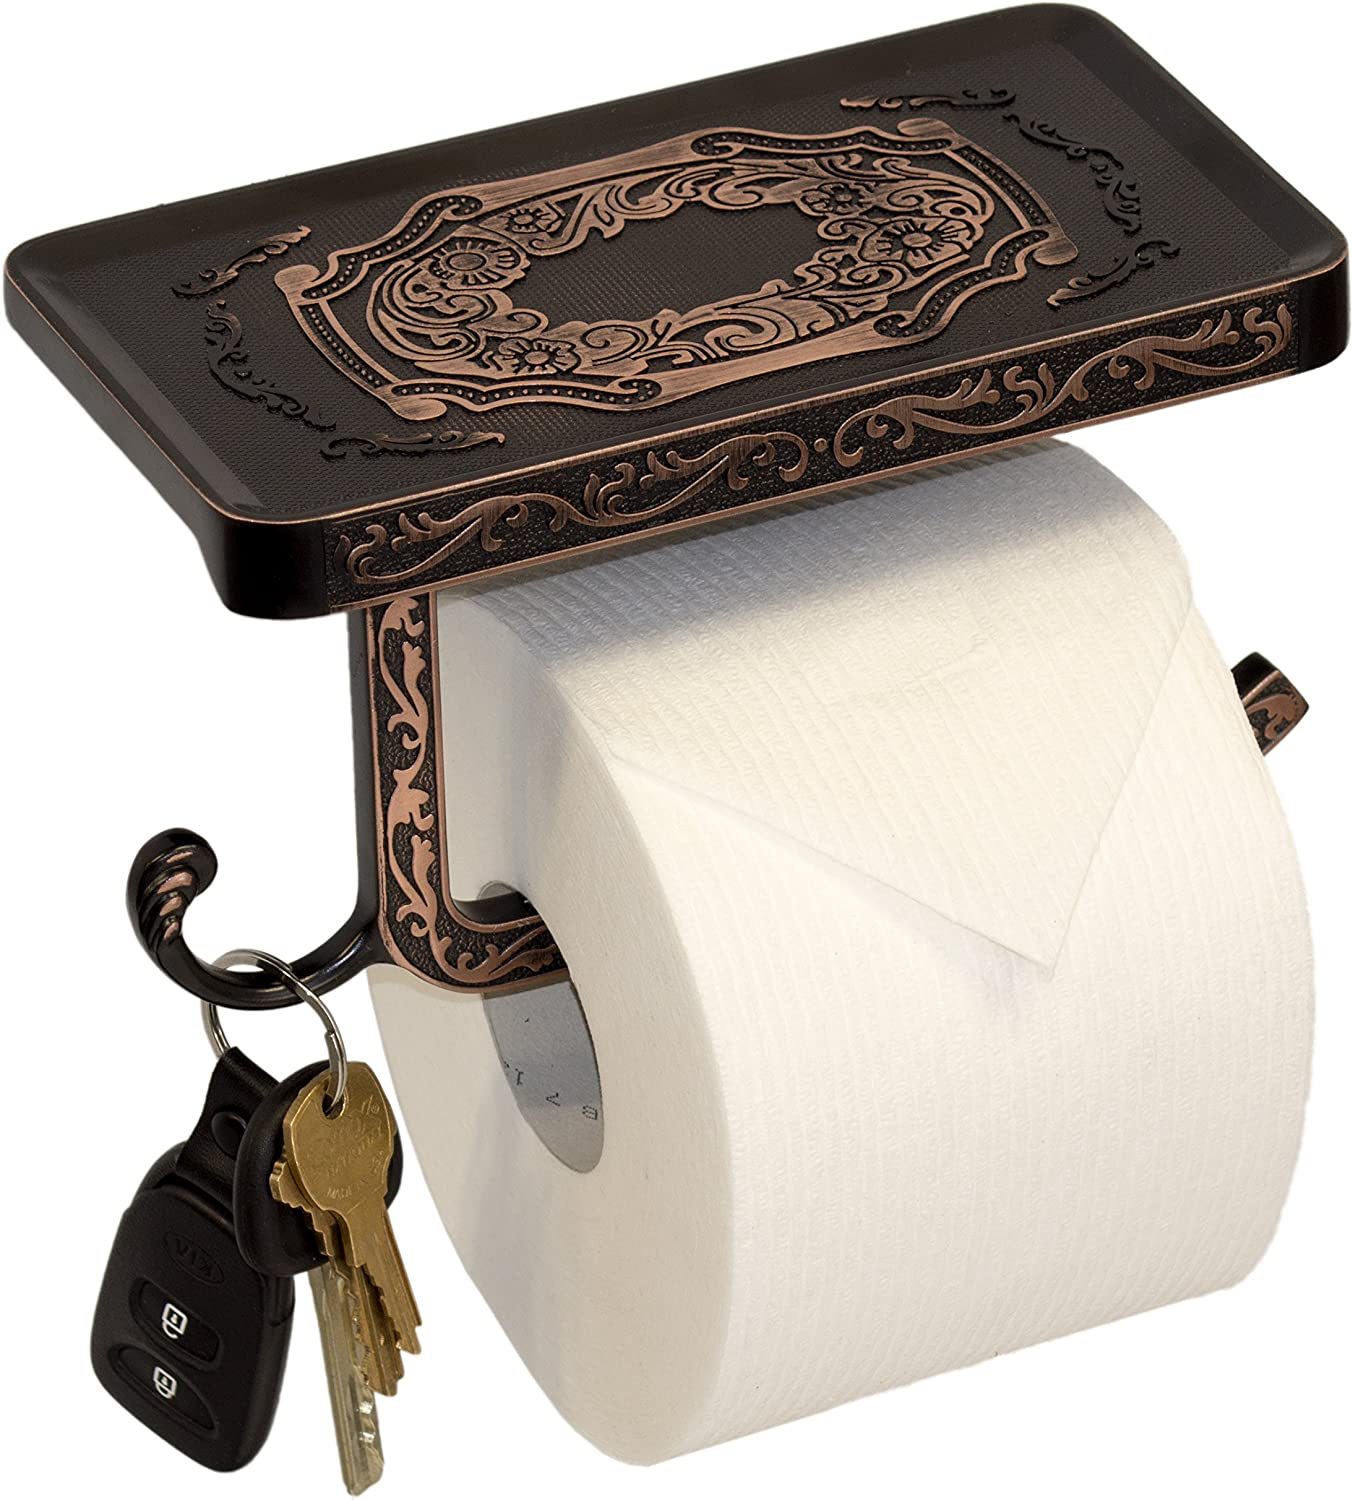 Neater Nest Reversible Toilet Paper and Holder Nashville-Davidson Mall Phone High quality with Shelf